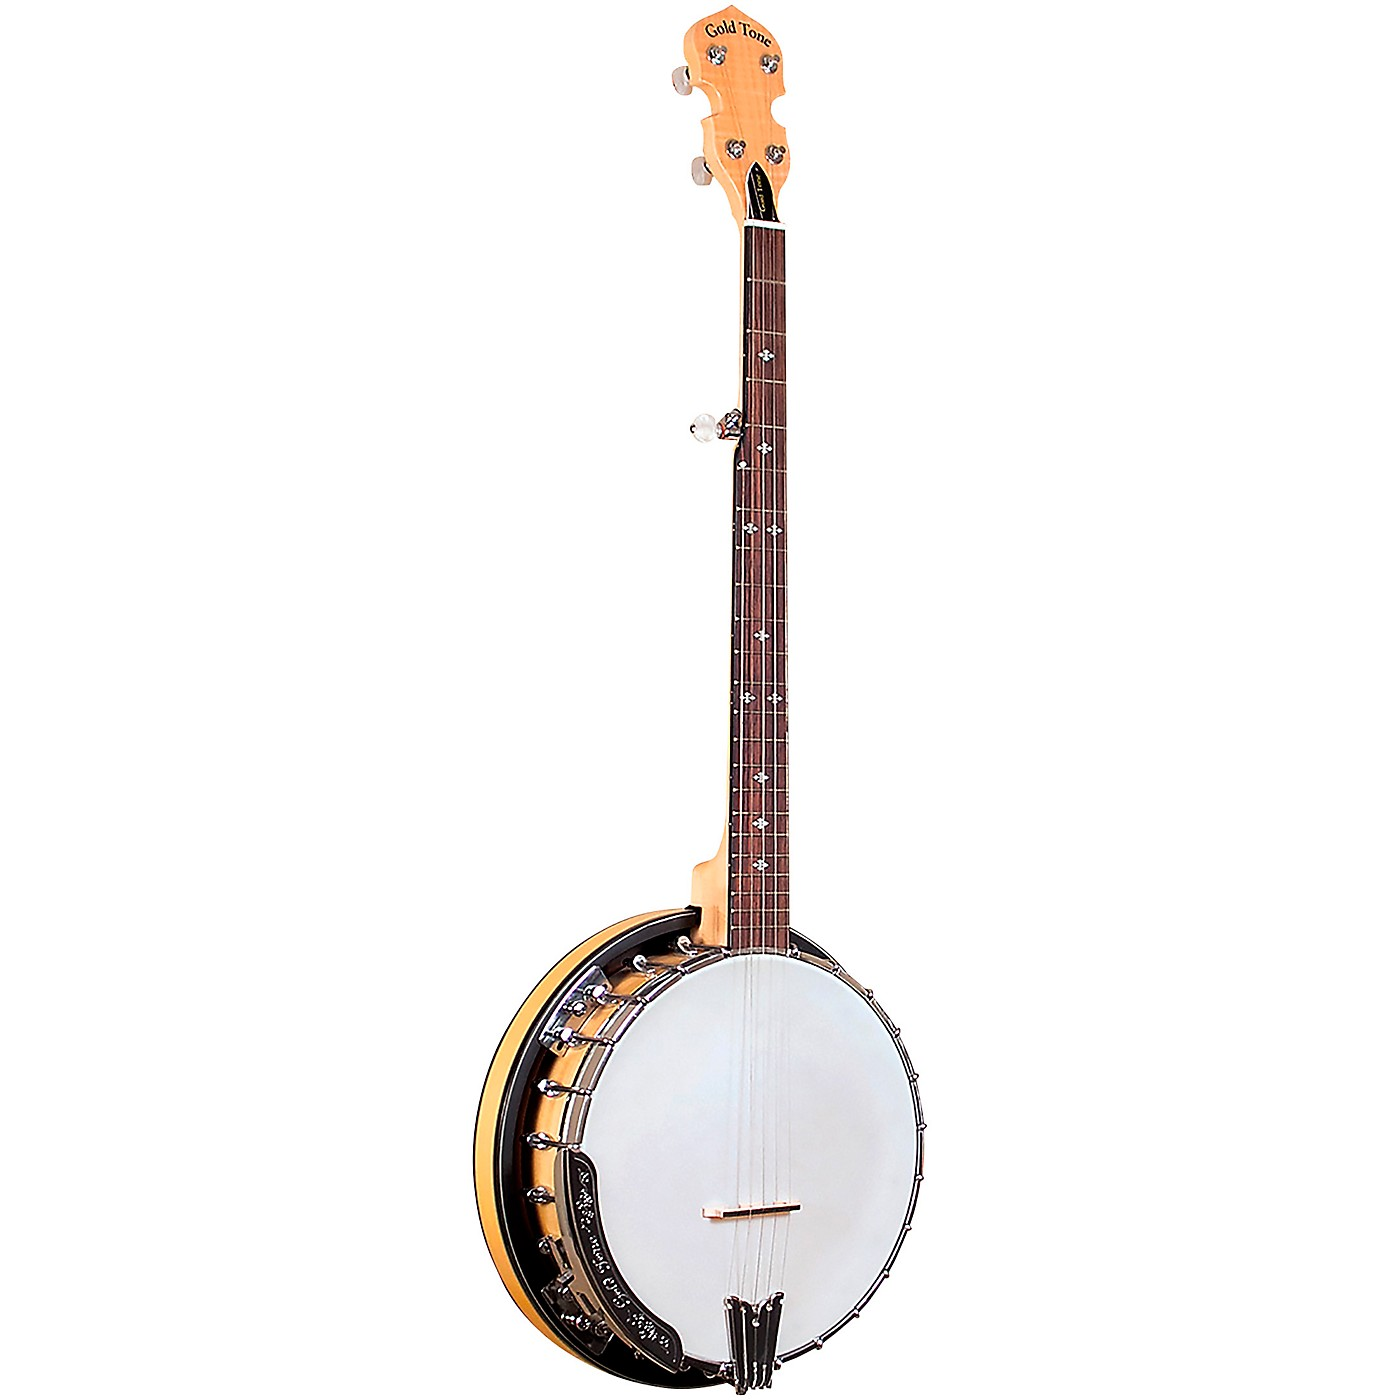 Gold Tone Left-Handed Maple Classic Banjo with Steel Tone Ring thumbnail